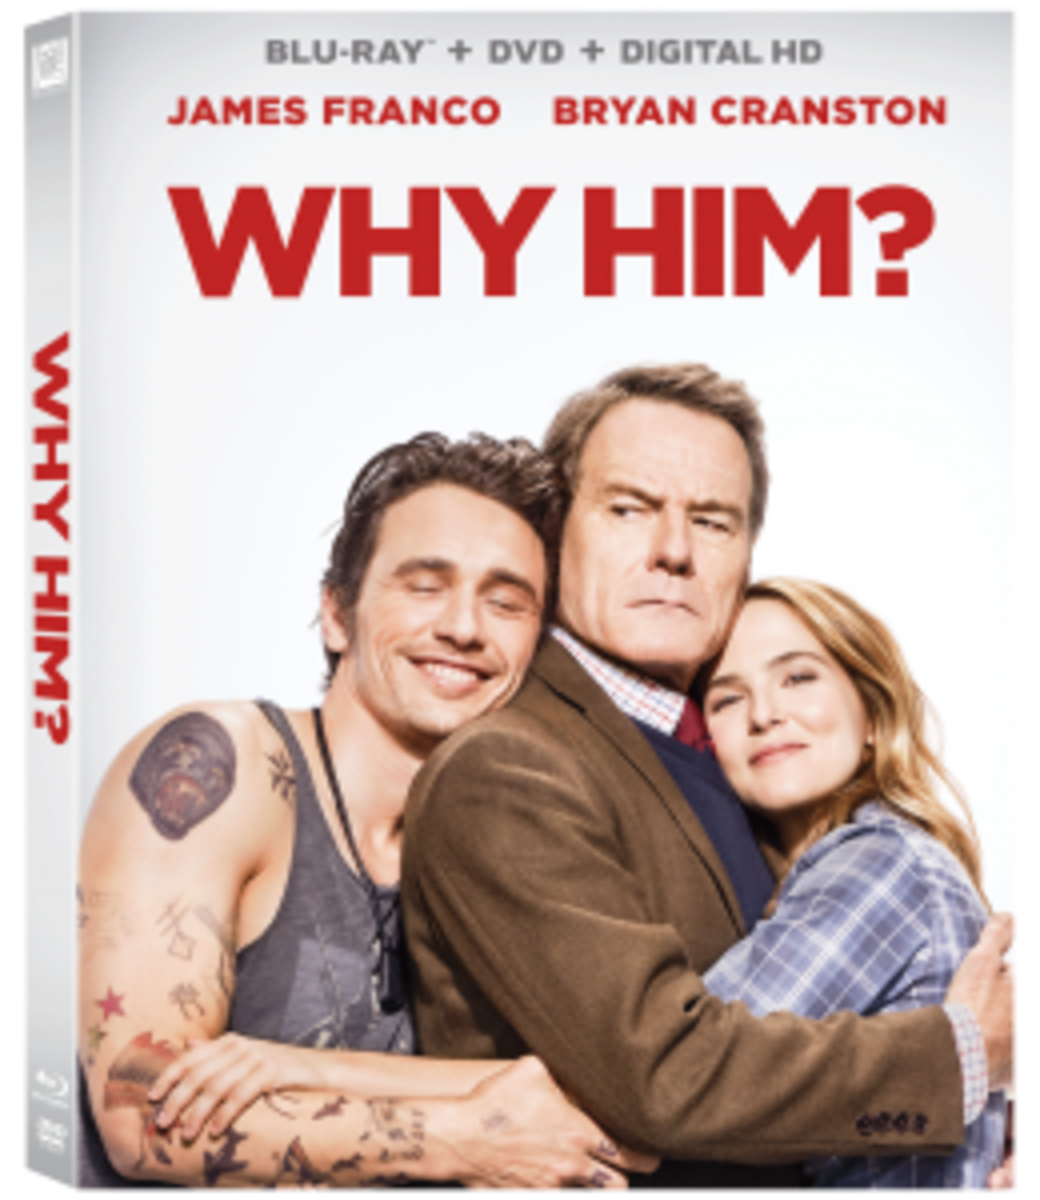 Writer-Director John Hamburg on Why Him, Why Now by Danny Manus | Script Magazine #scriptchat #screenwriting